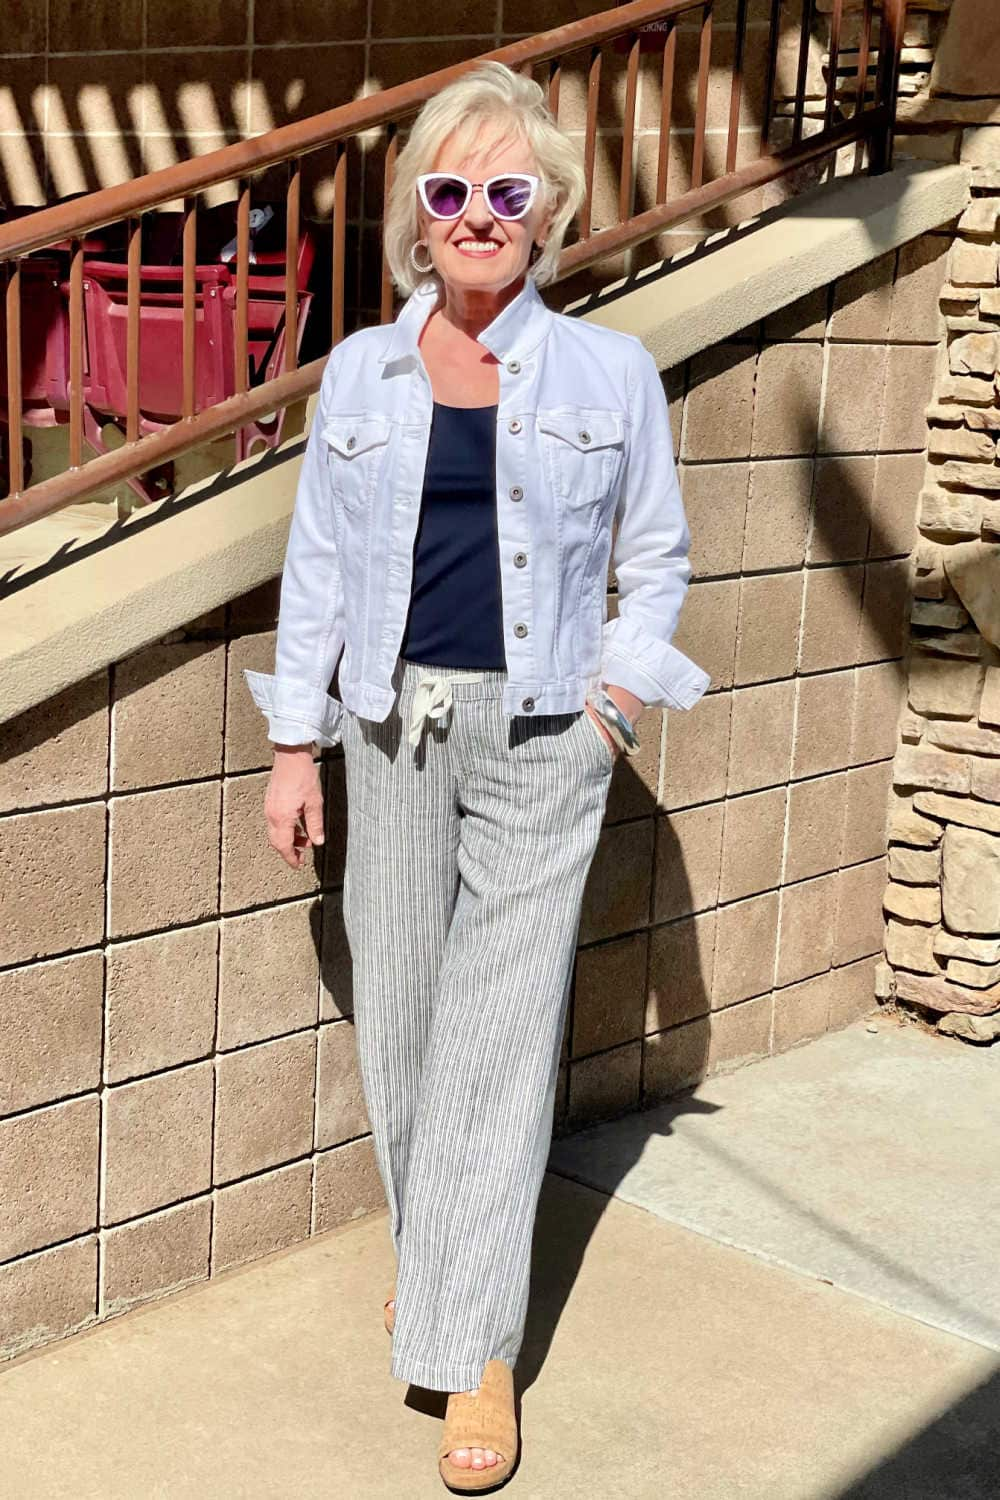 woman walking toward the camera wearing mirrored sunglasses, white jacket, striped pants and cork shoes